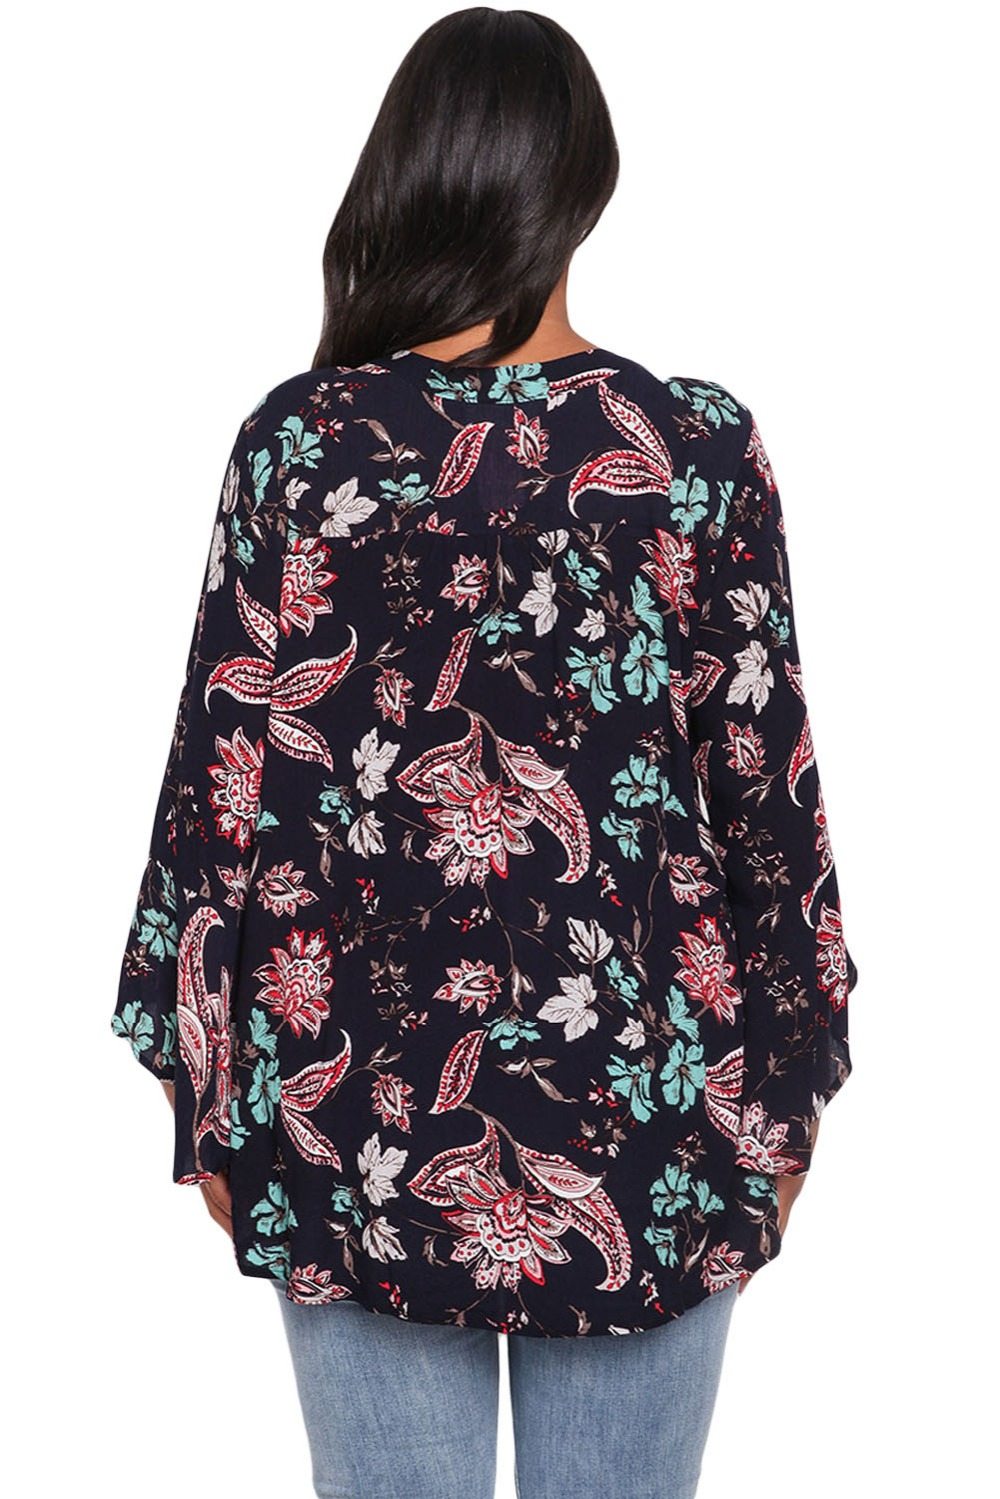 8129be3a7cc X 2X 3X V Choker Neck Shirt Printed plus size Bell Sleeve Blouse Casual Top  for Women bohemian top Basecolor Floral Paisley Sale-in Blouses   Shirts  from ...